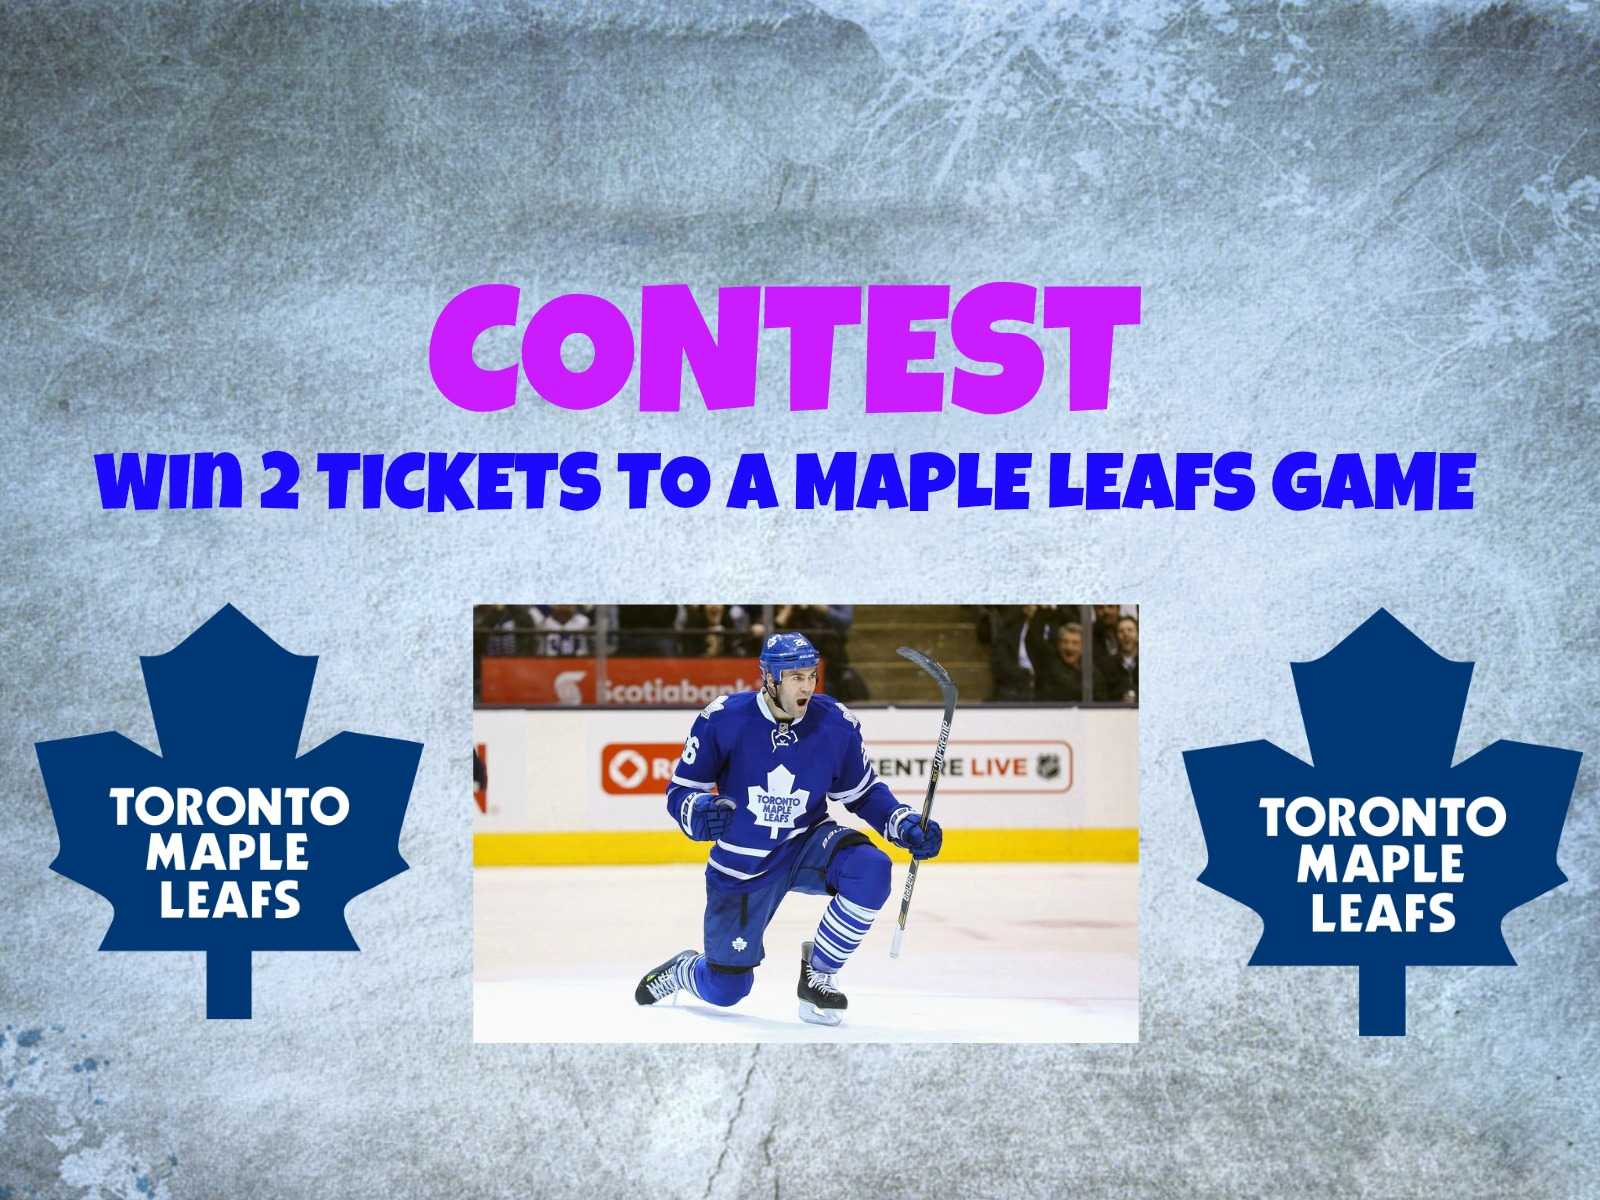 CONTEST: WIN 2 TICKETS TO THE MAPLE LEAFS GAME